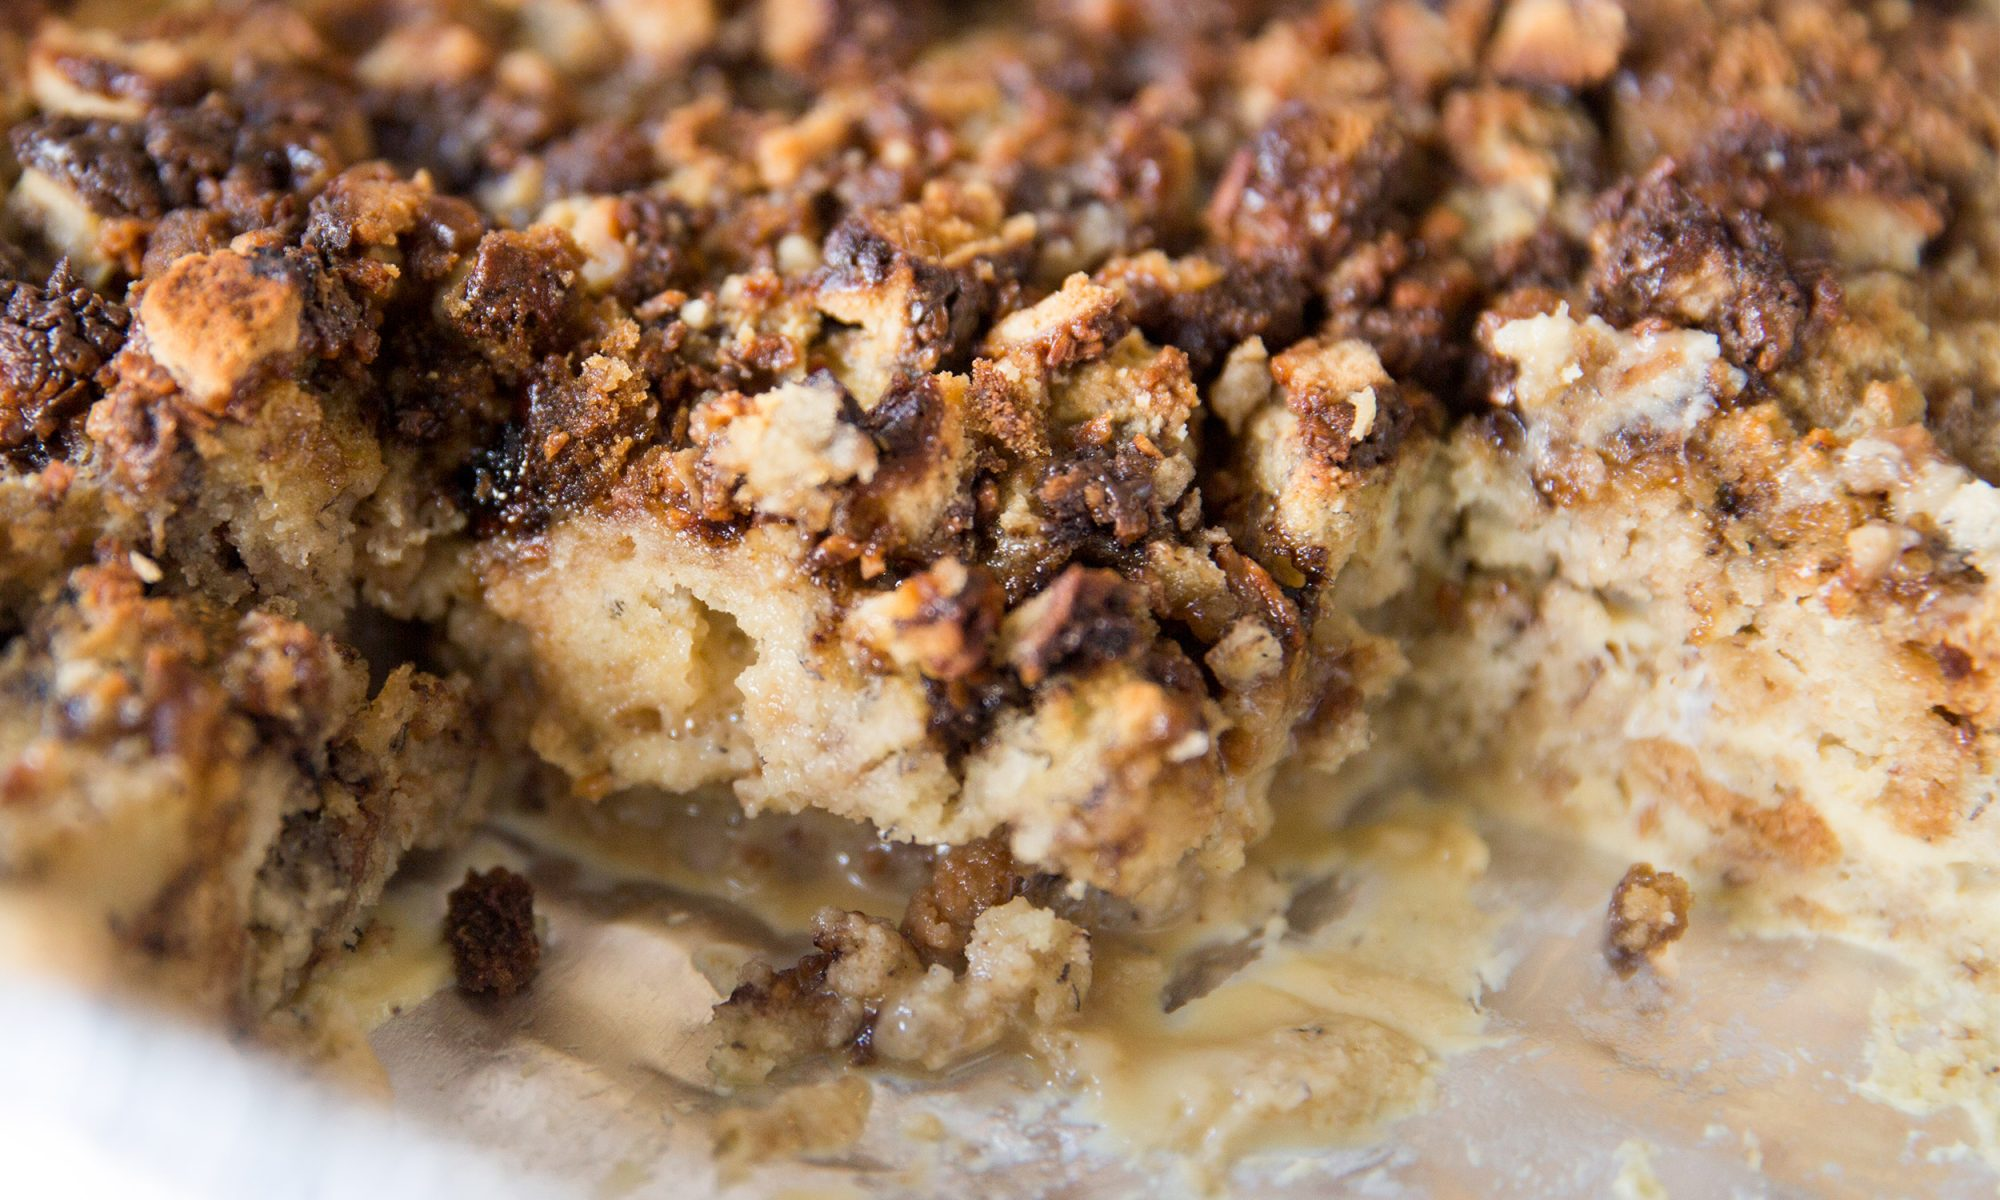 Bake leftover girl scout cookies into banana bread then make french ec bake leftover girl scout cookies into banana bread then make french toast casserole forumfinder Image collections